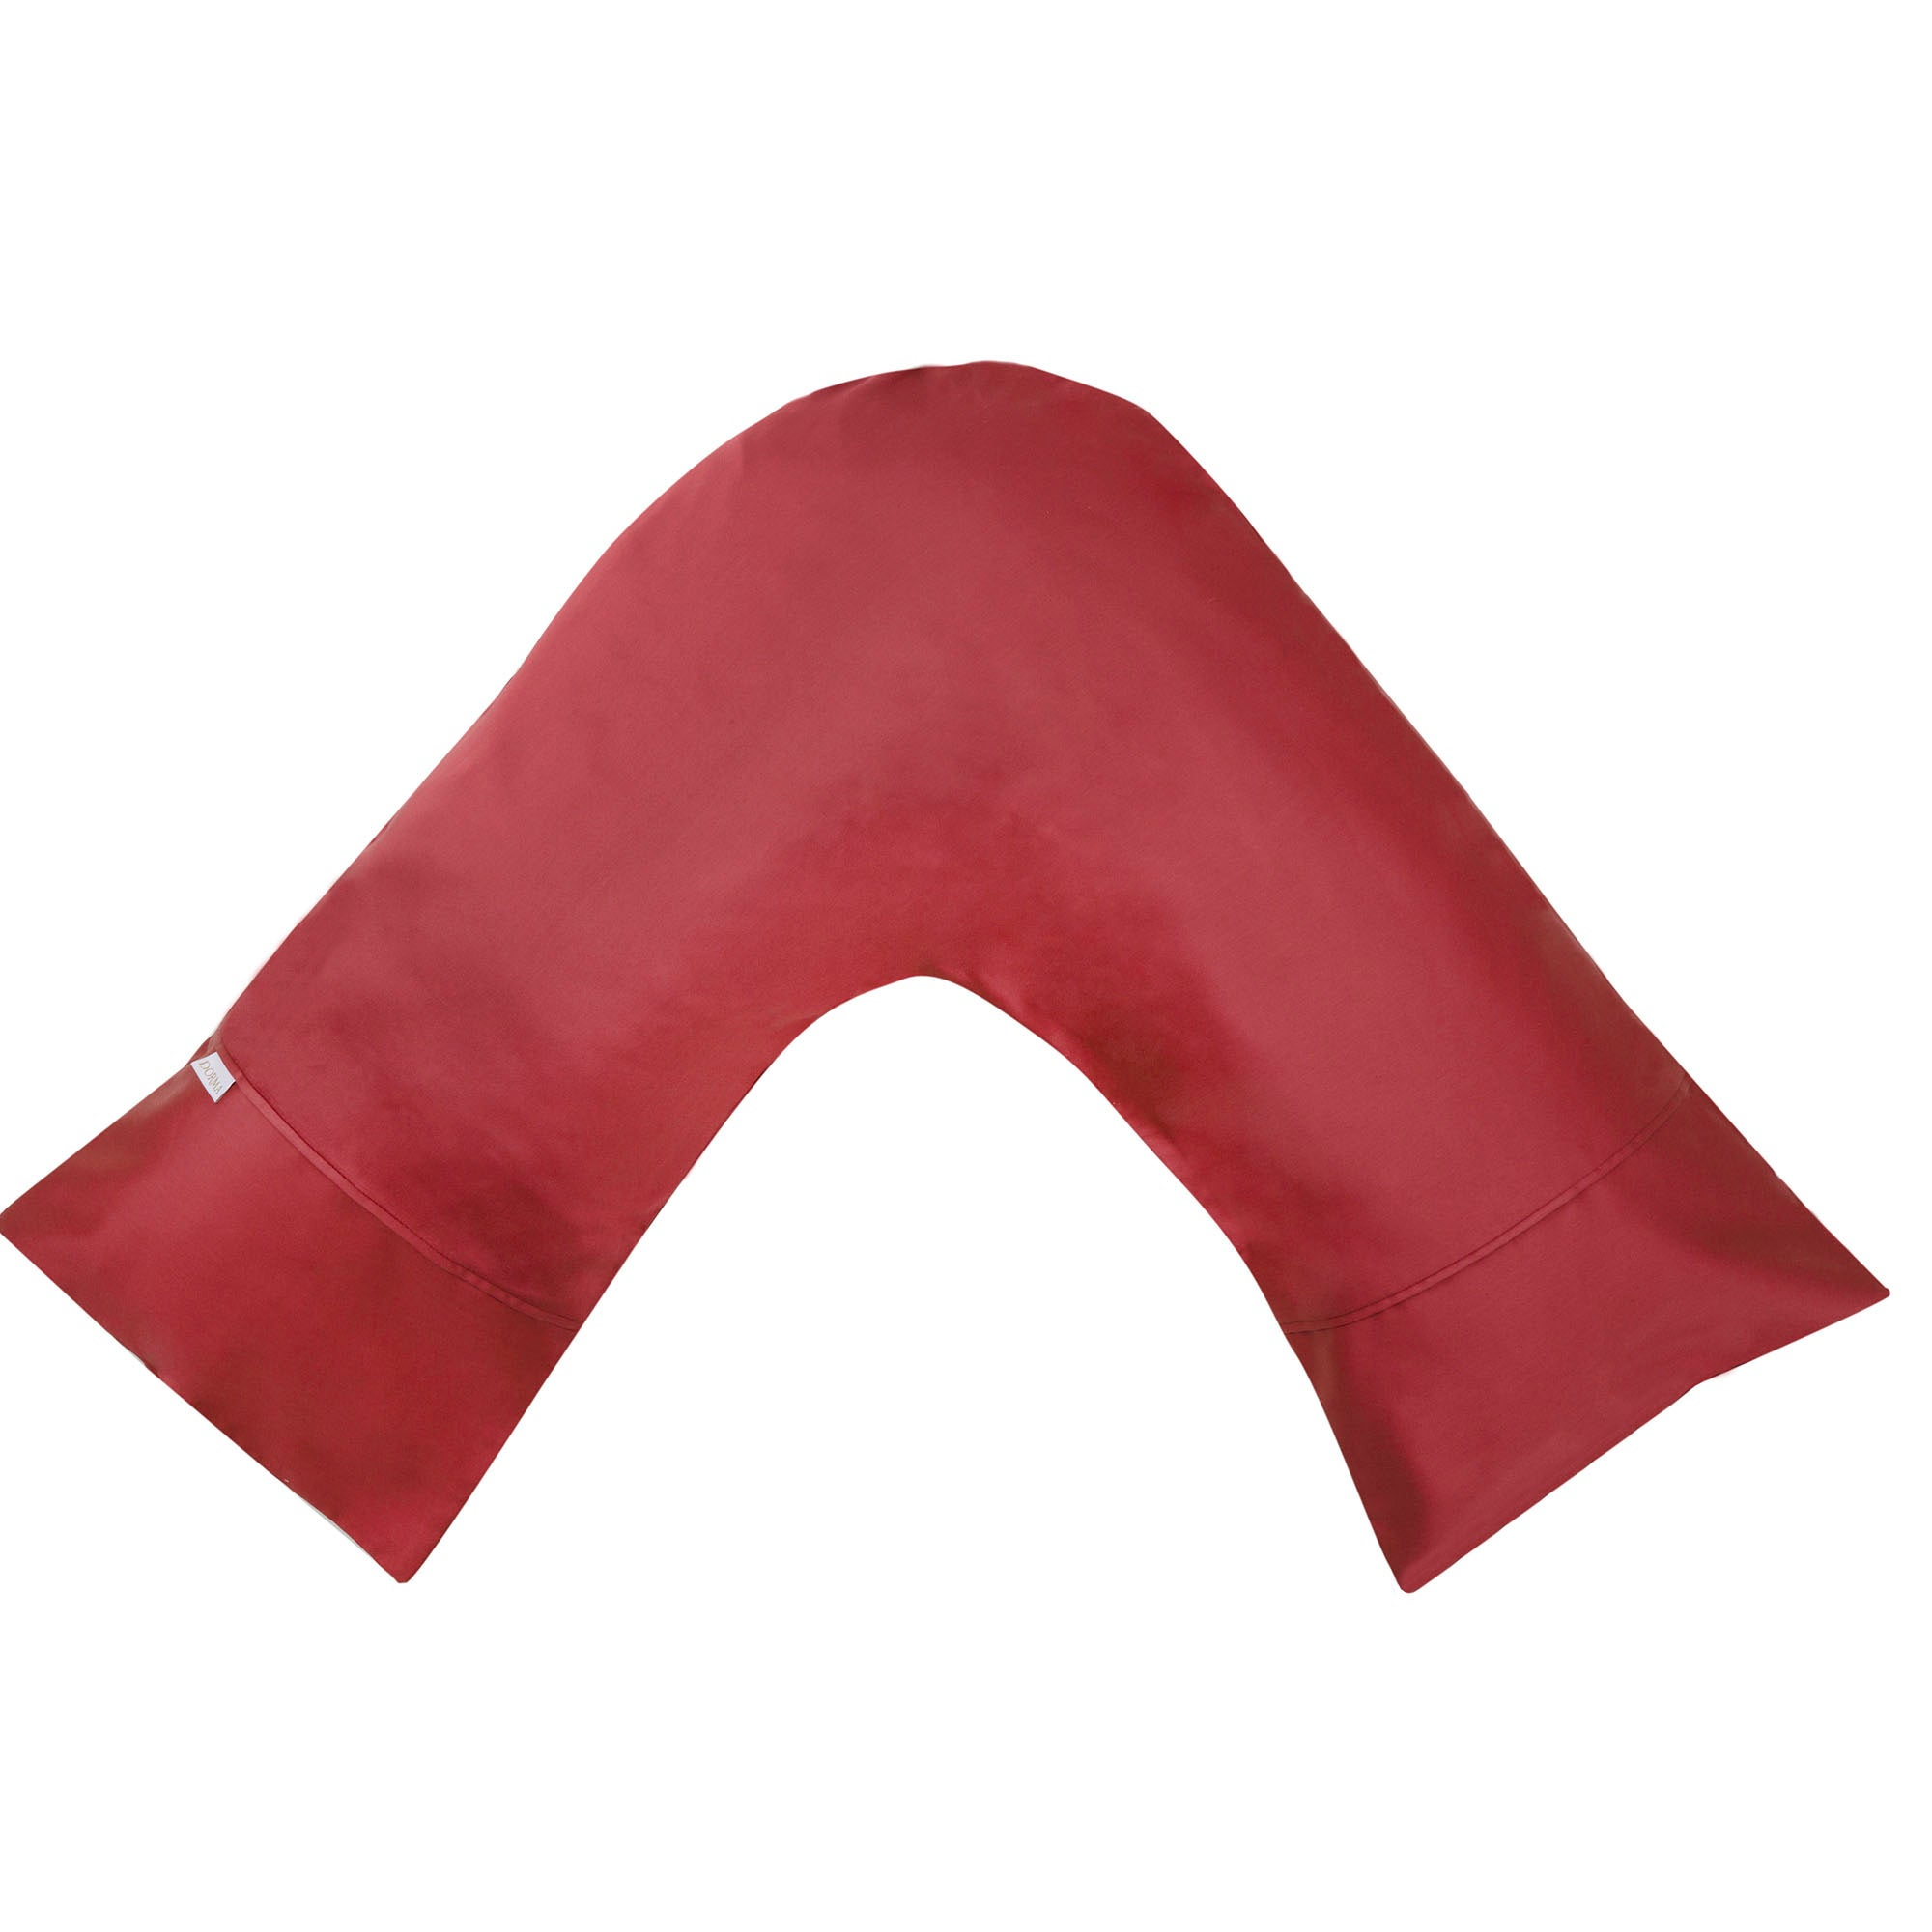 Dorma 350 Thread Count Red V Shaped Pillowcase